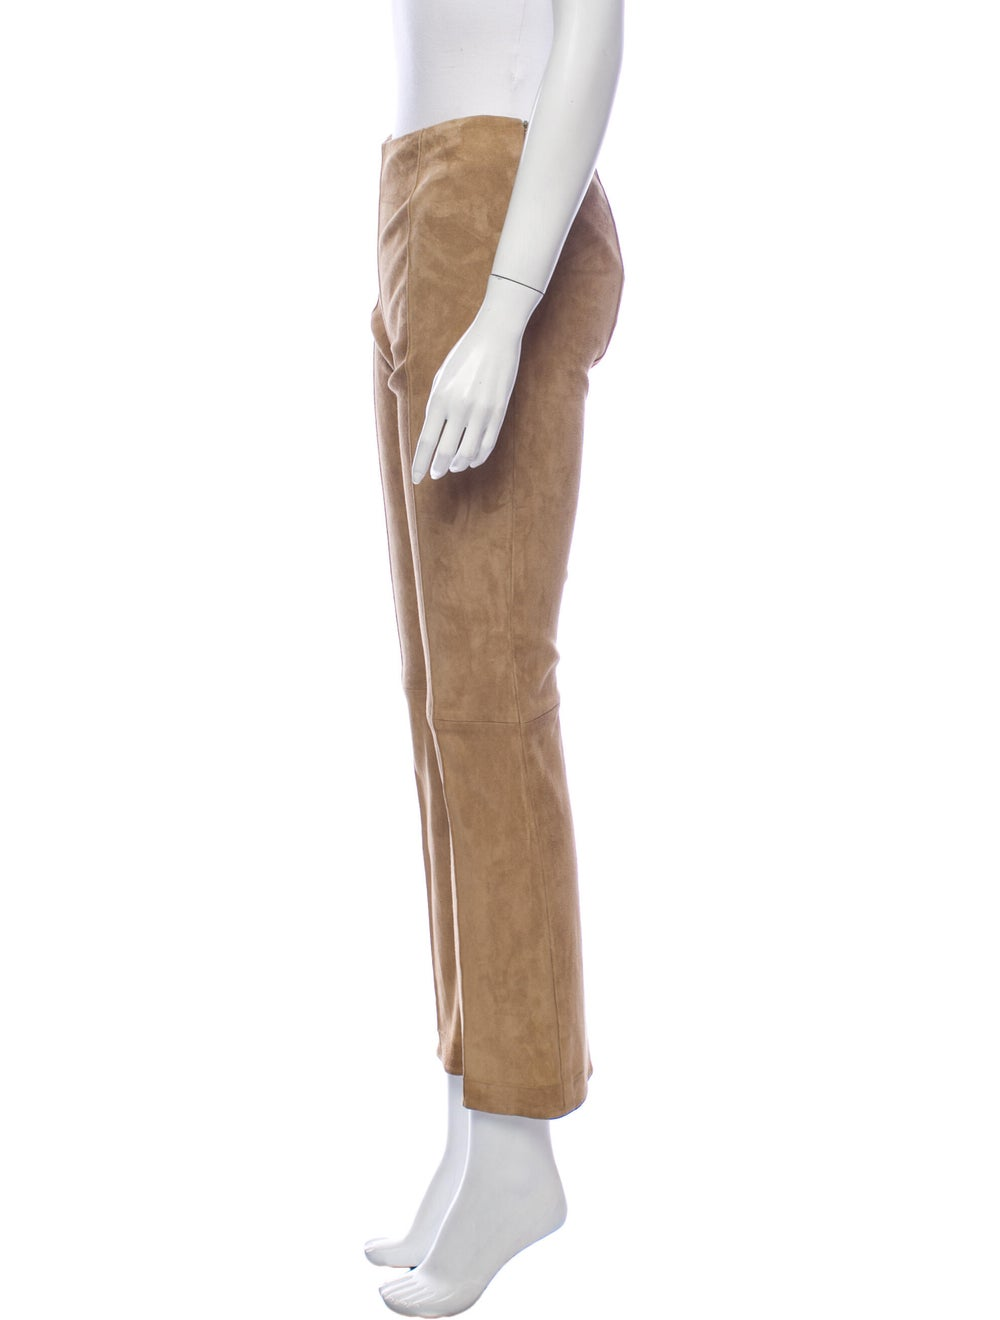 The Row Flared Pants - image 2